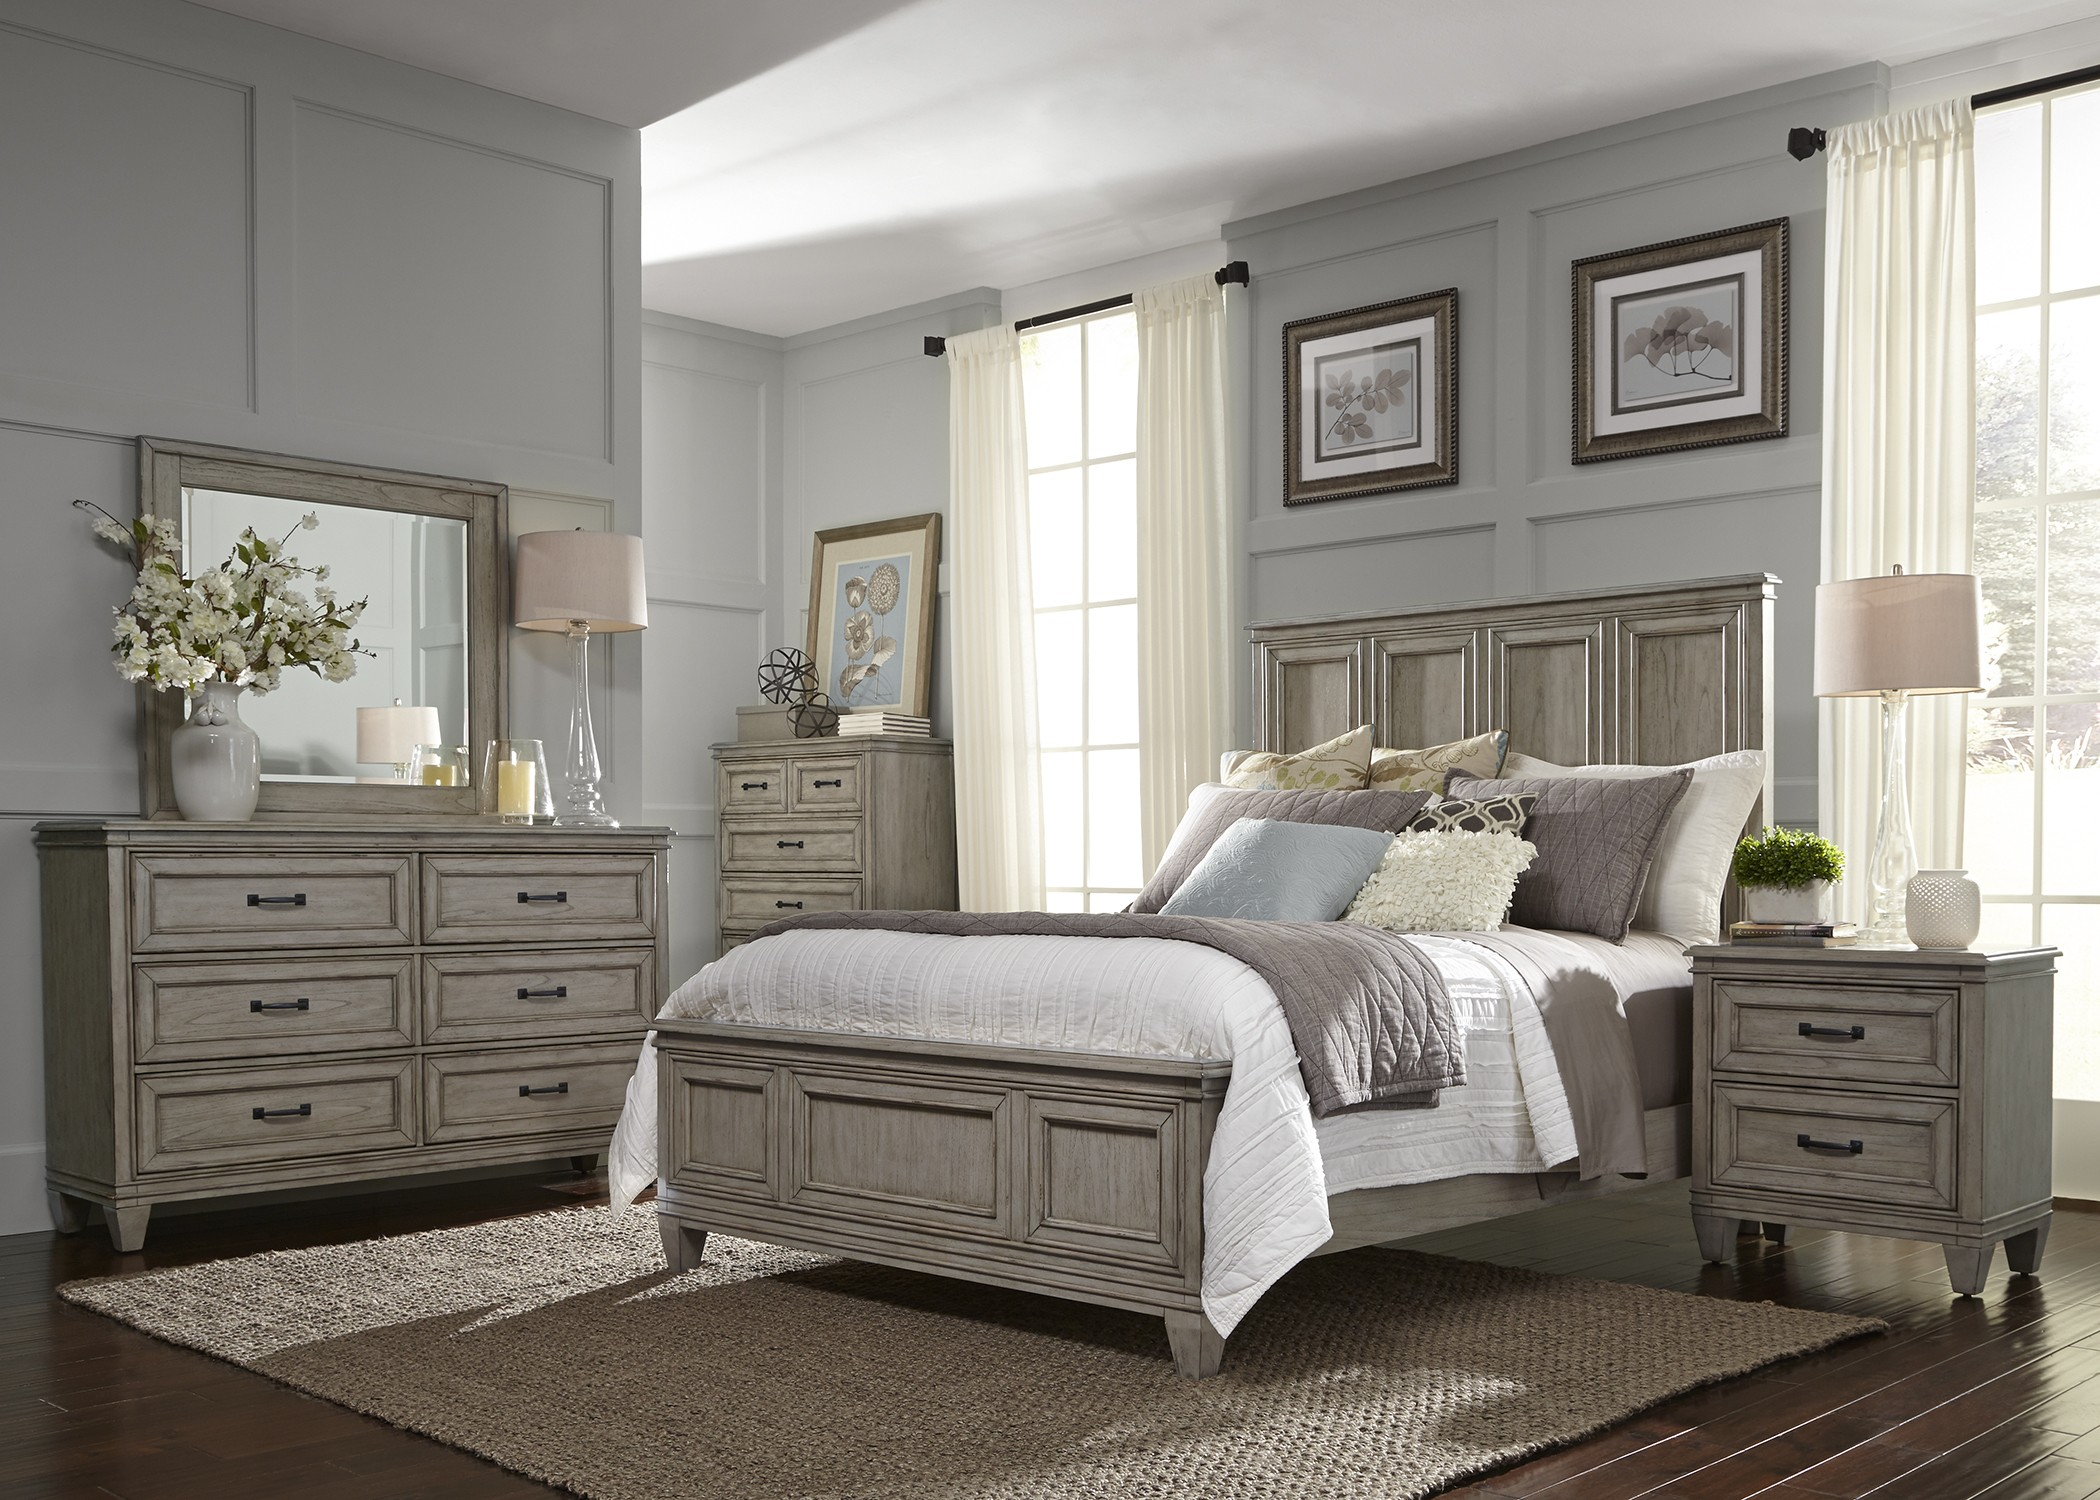 Grayton Grove Driftwood Panel Bedroom Set From Liberty